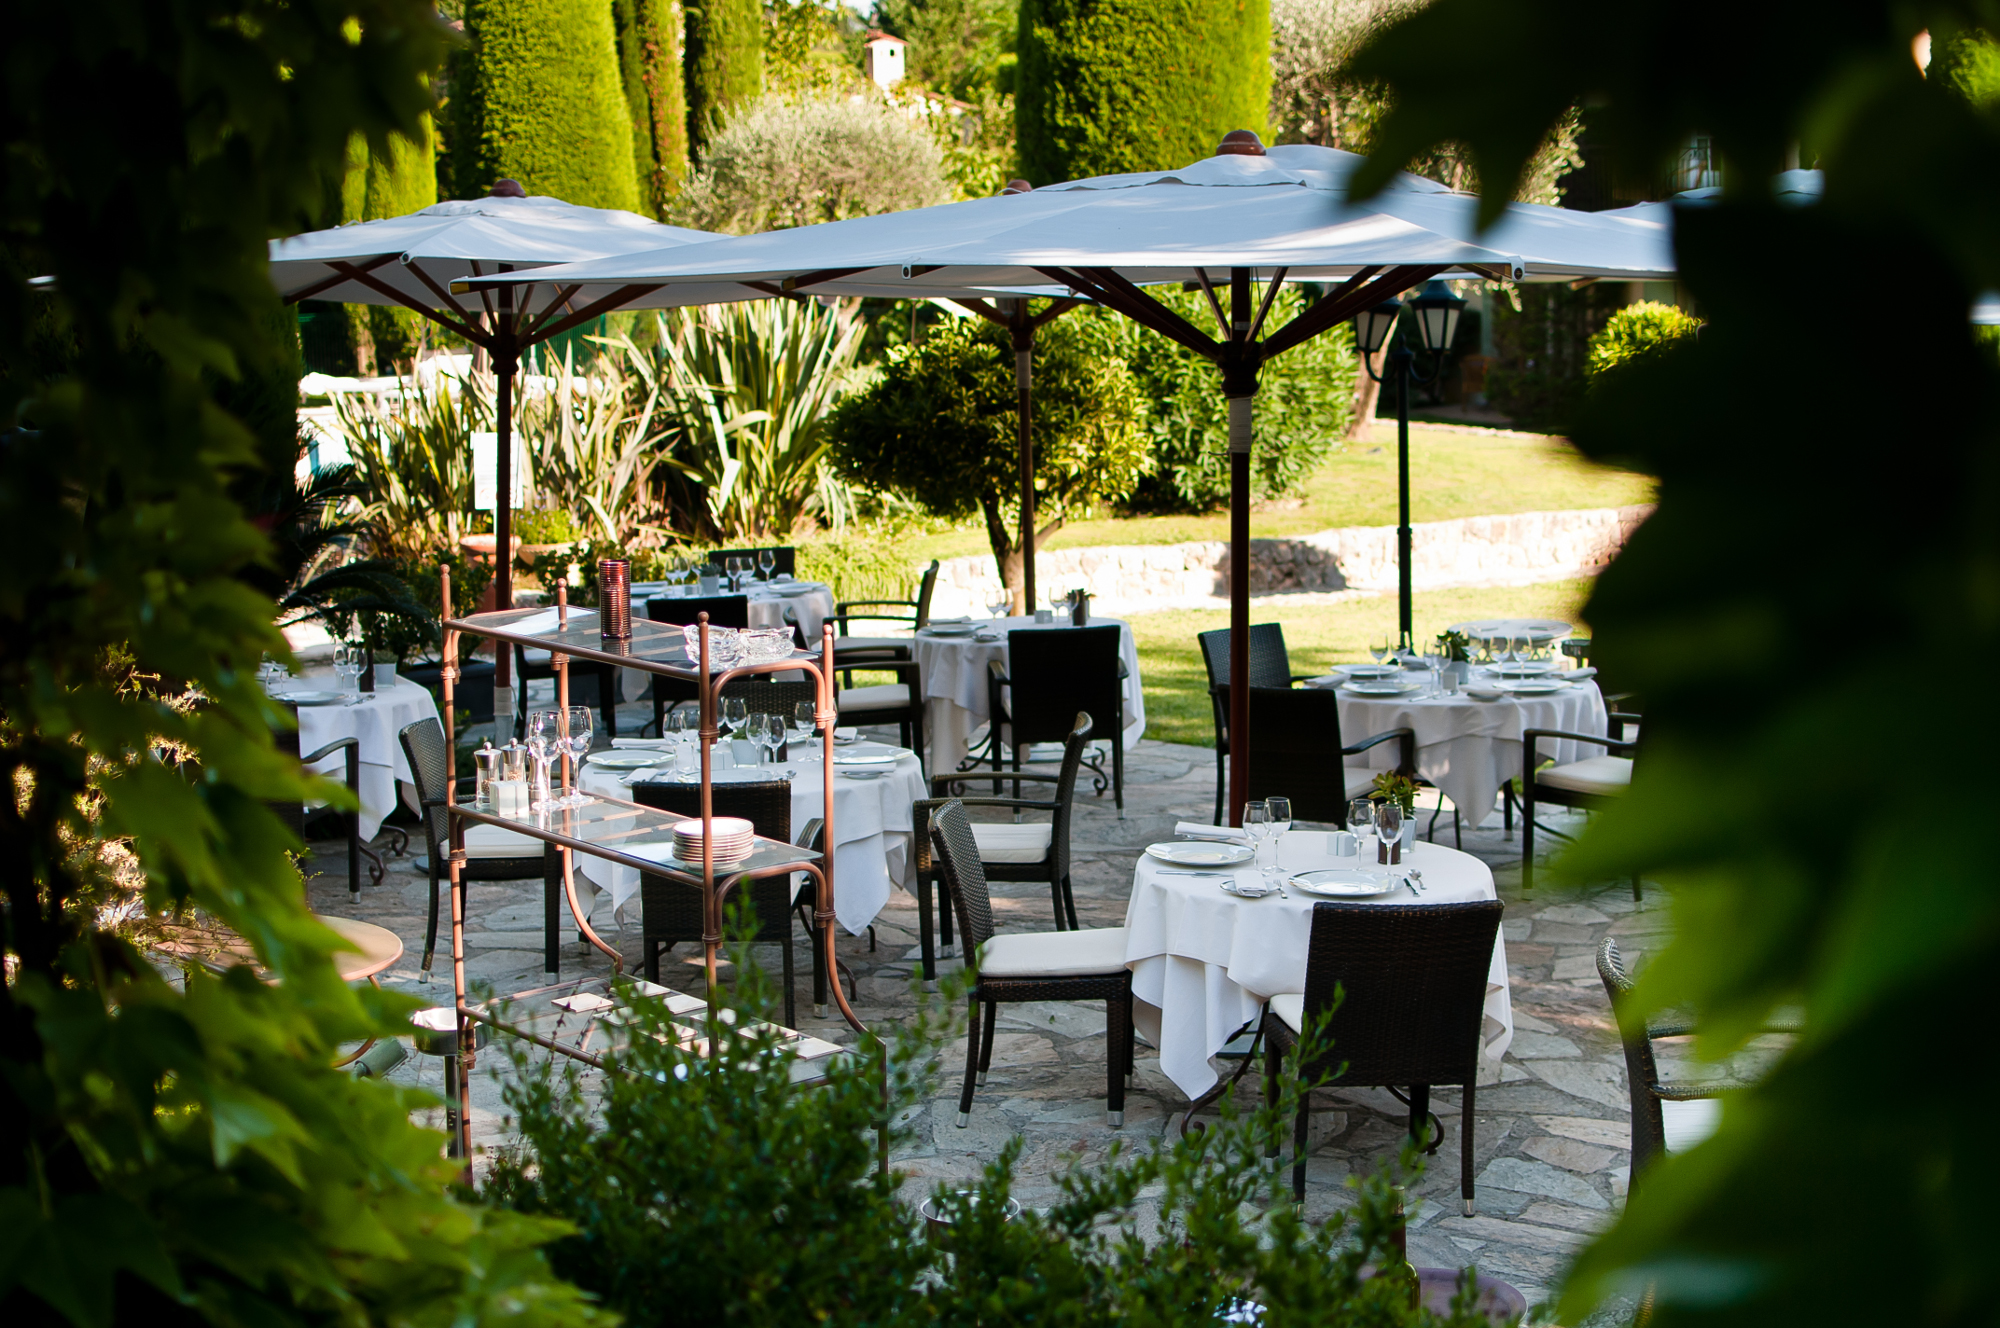 Restaurant le jardin bar room service menu de l for Restaurant antibes le jardin